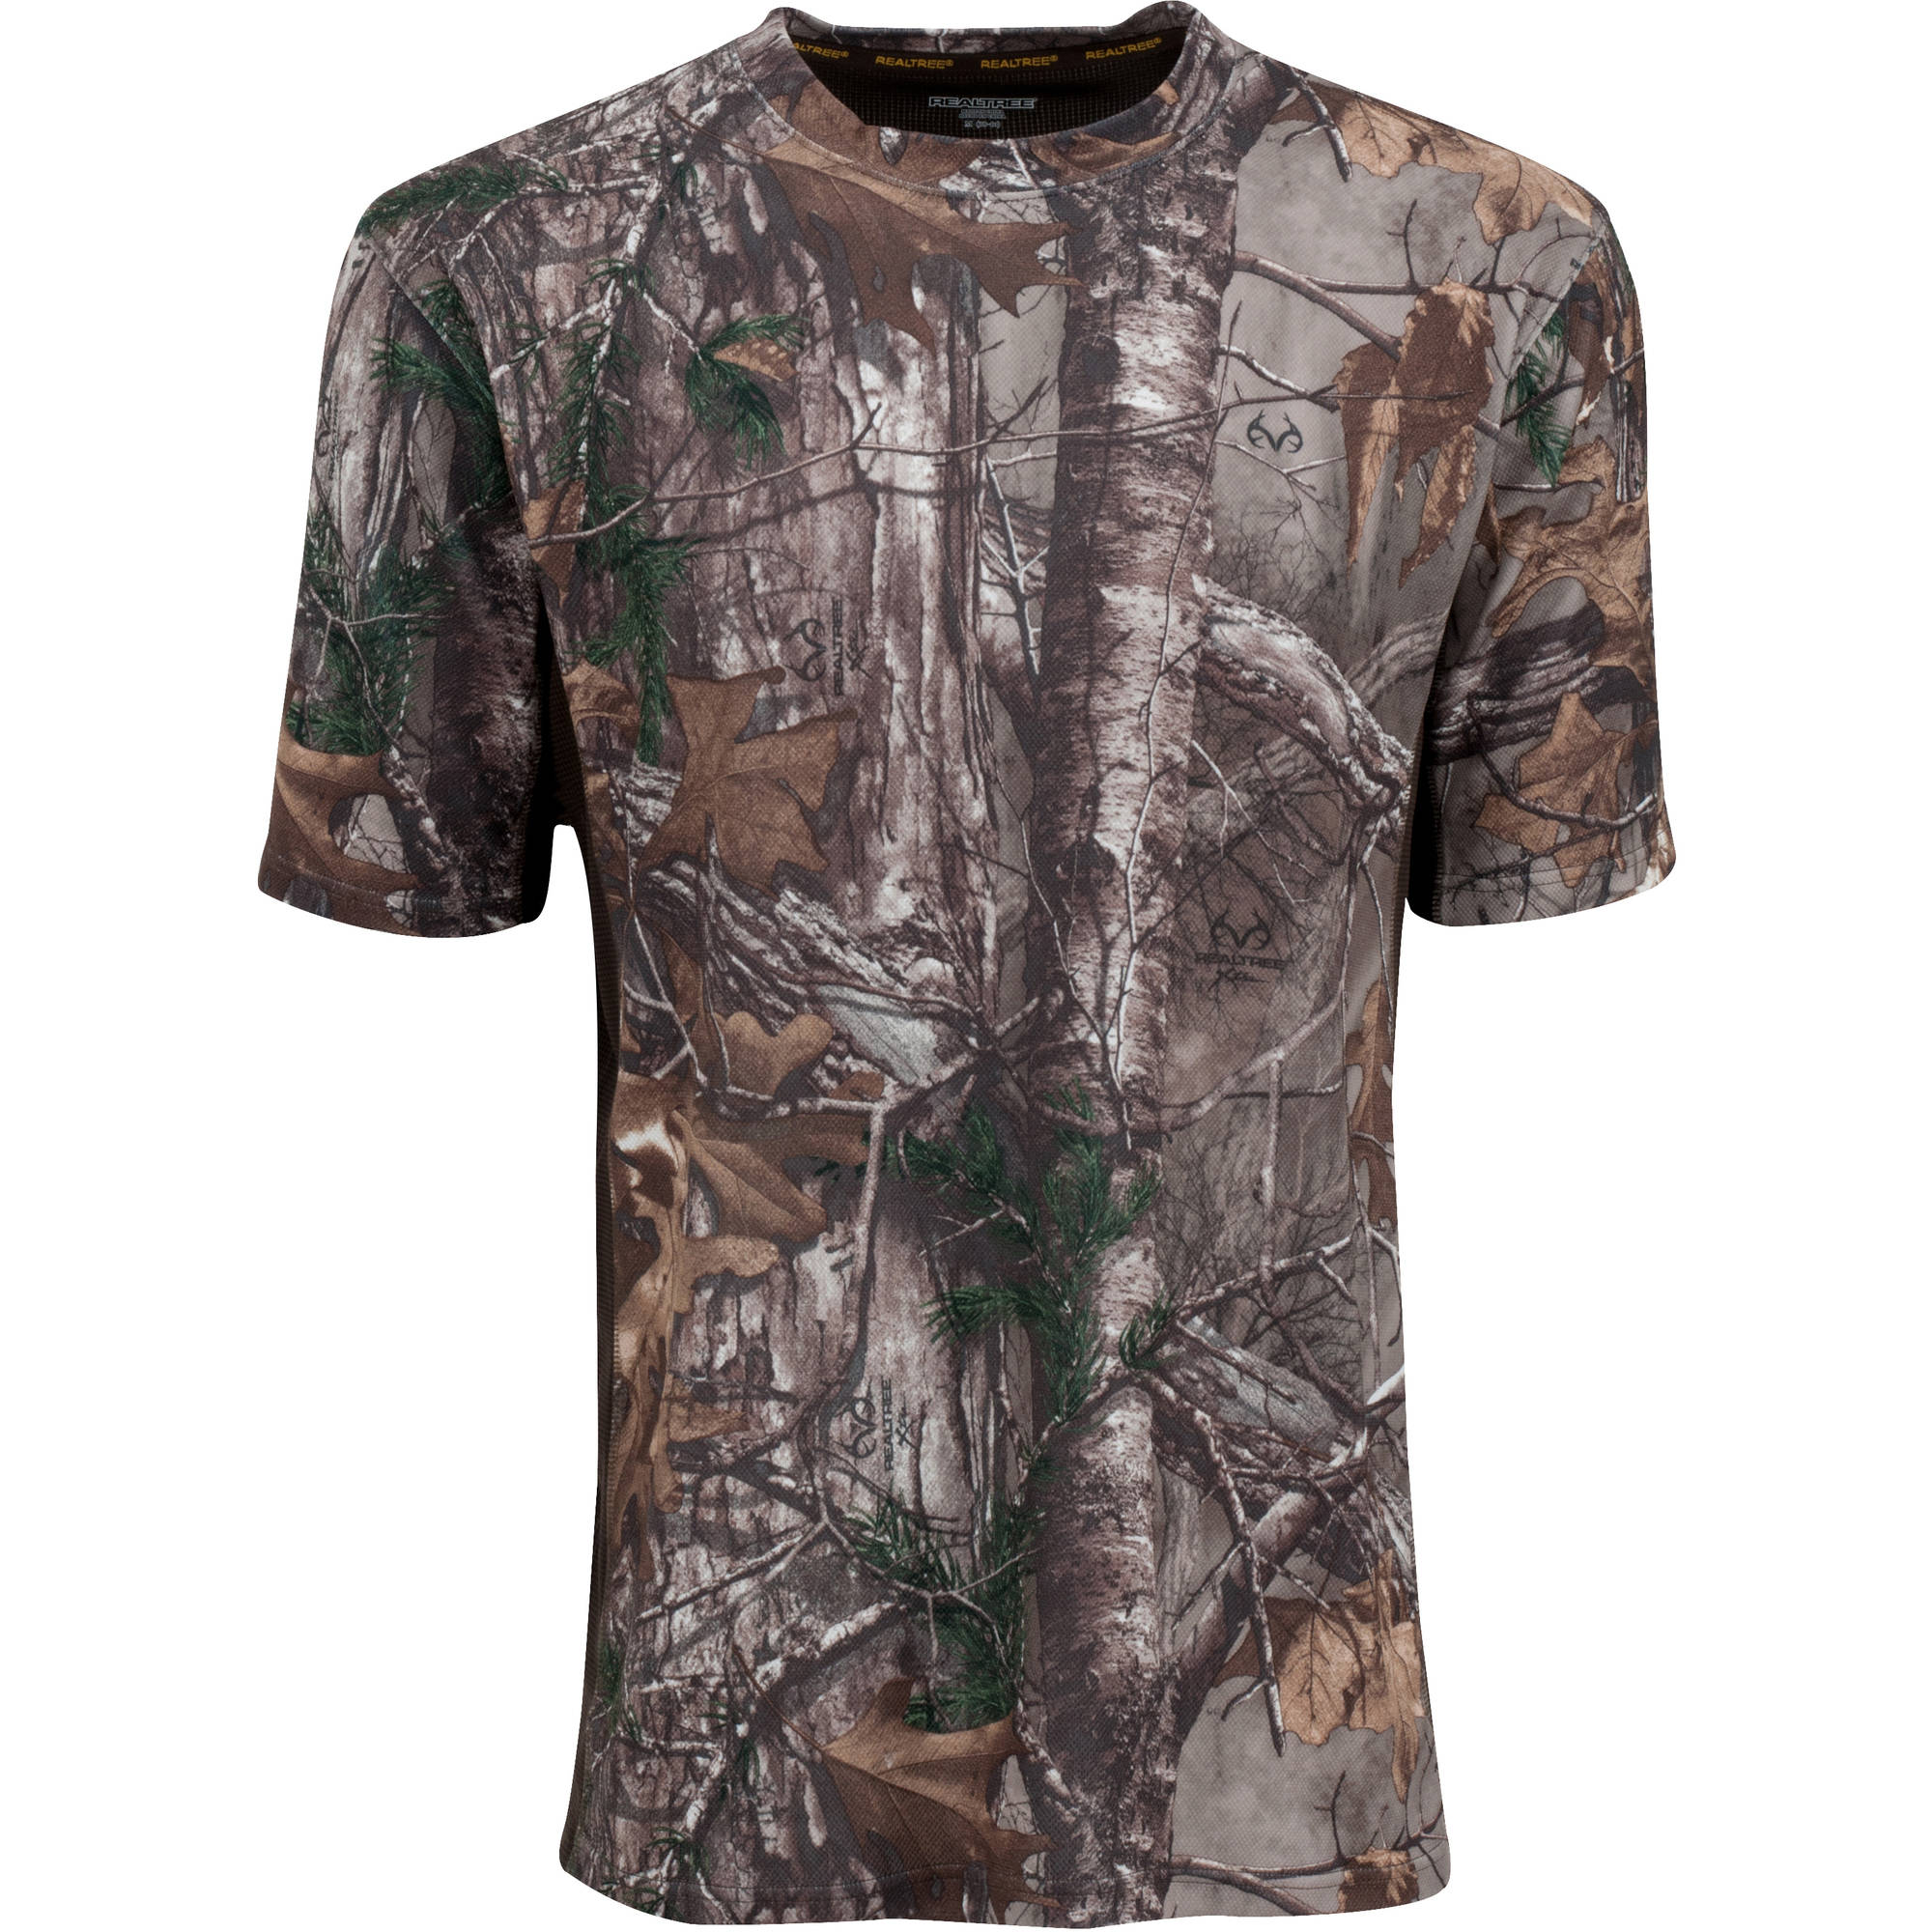 Mossy Oak Men's Short Sleeve Performance Tee